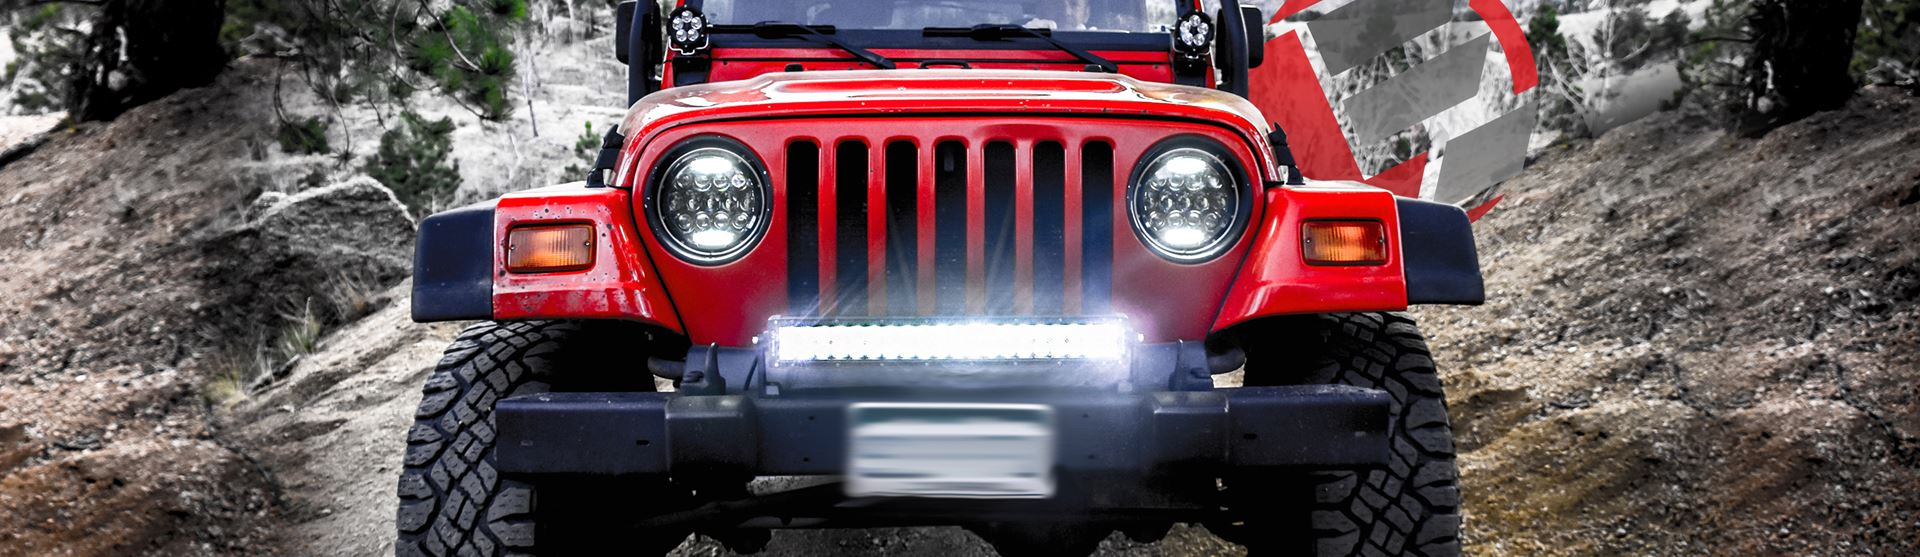 Led Light Bar Online Store For Trucks Jeep Bars Double Wiring Harness Click To Shop Dual Row